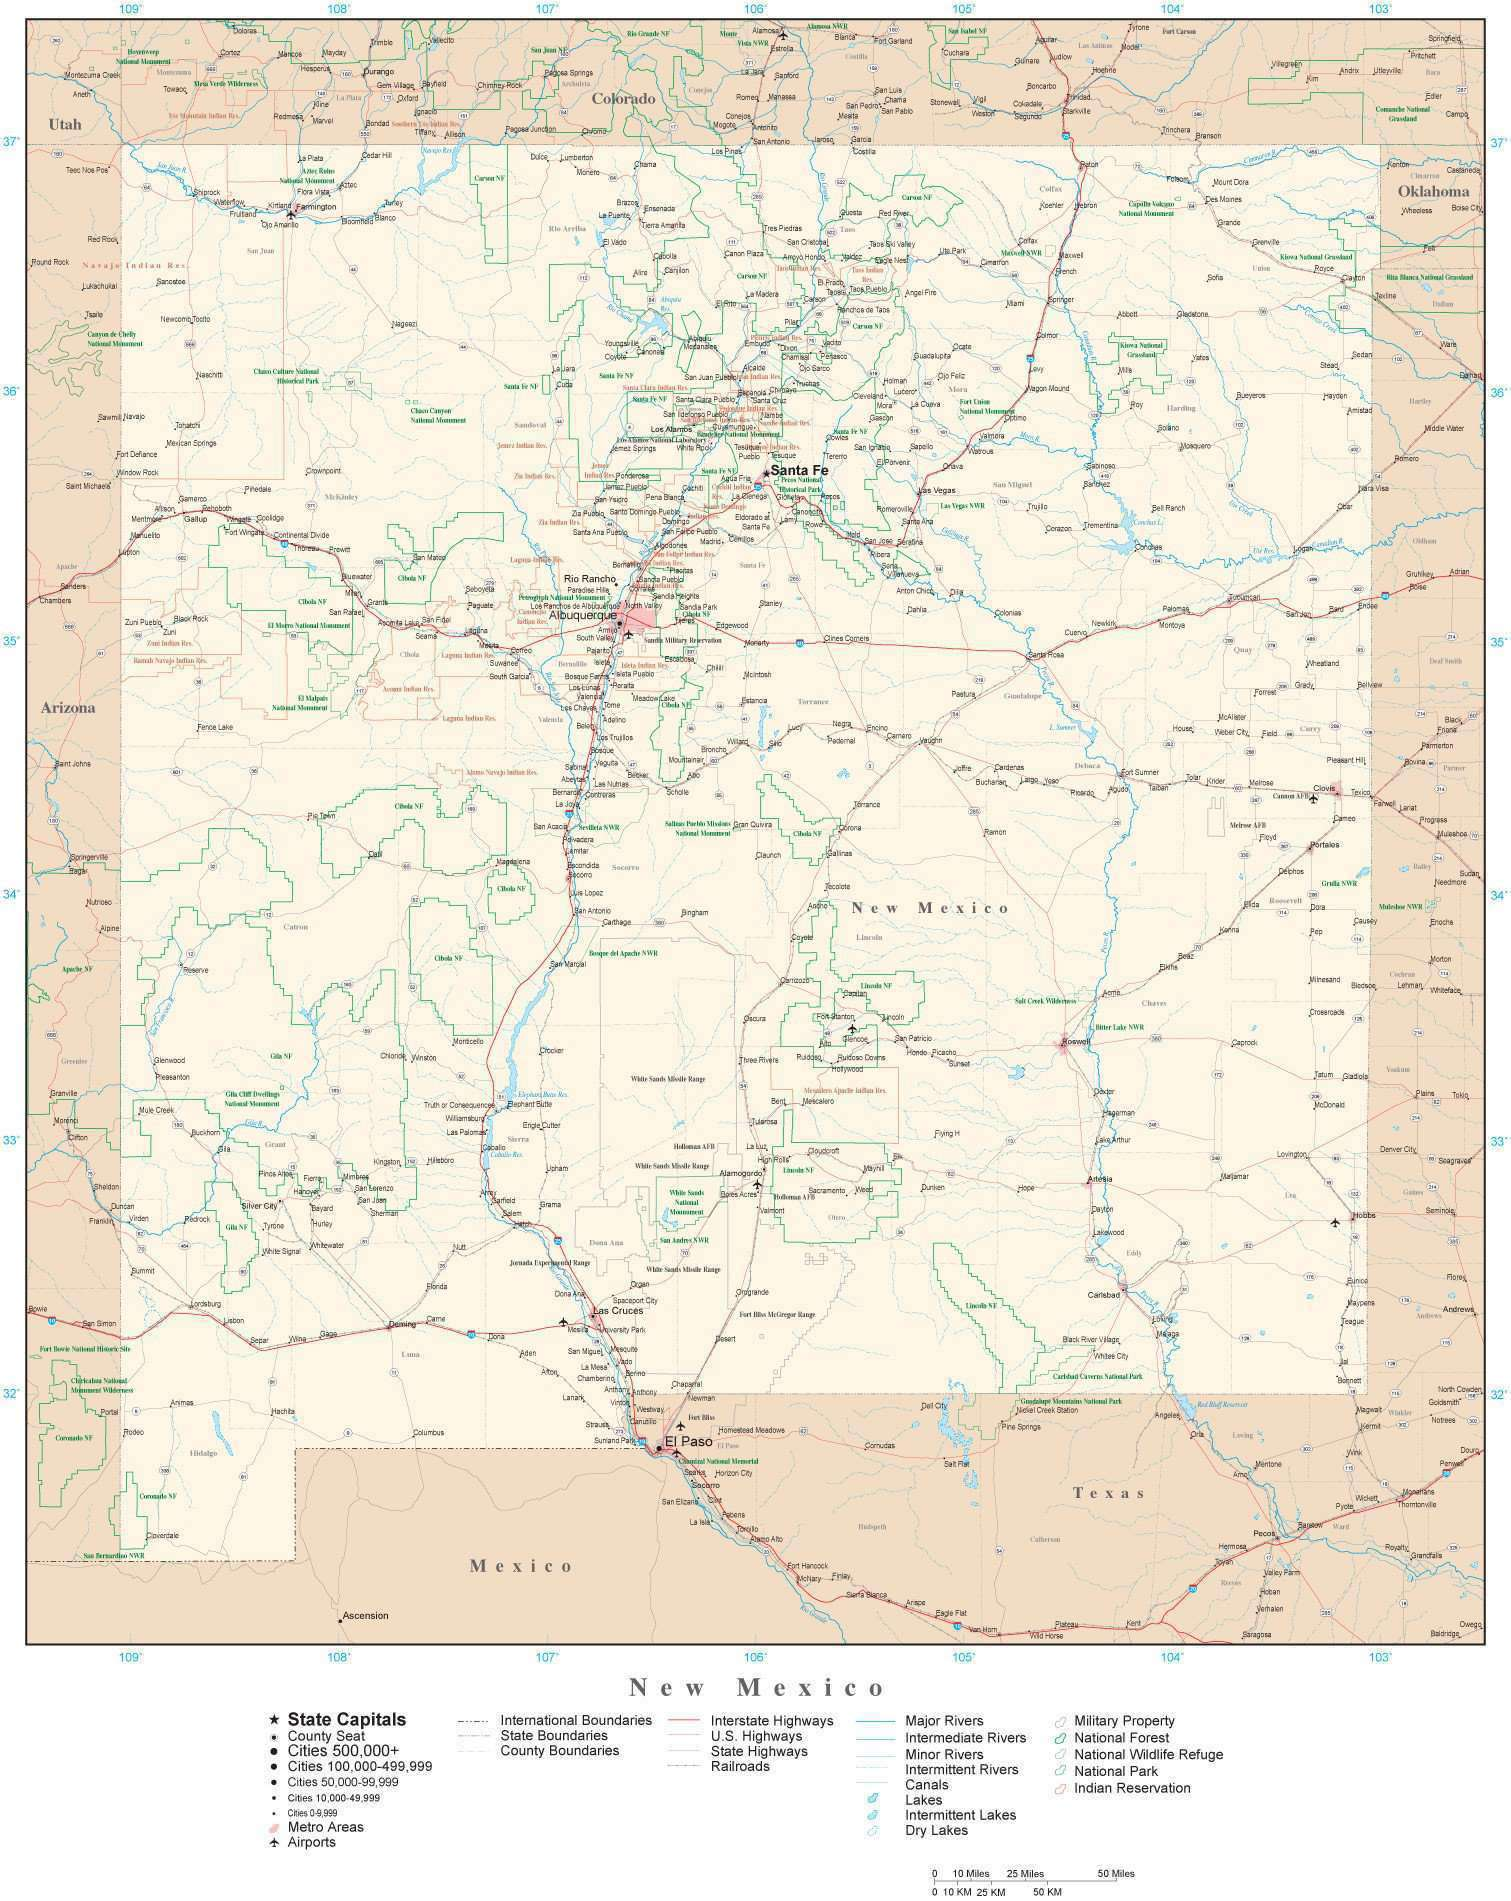 Rivers In New Mexico Map.New Mexico Detailed Map In Adobe Illustrator Vector Format Detailed